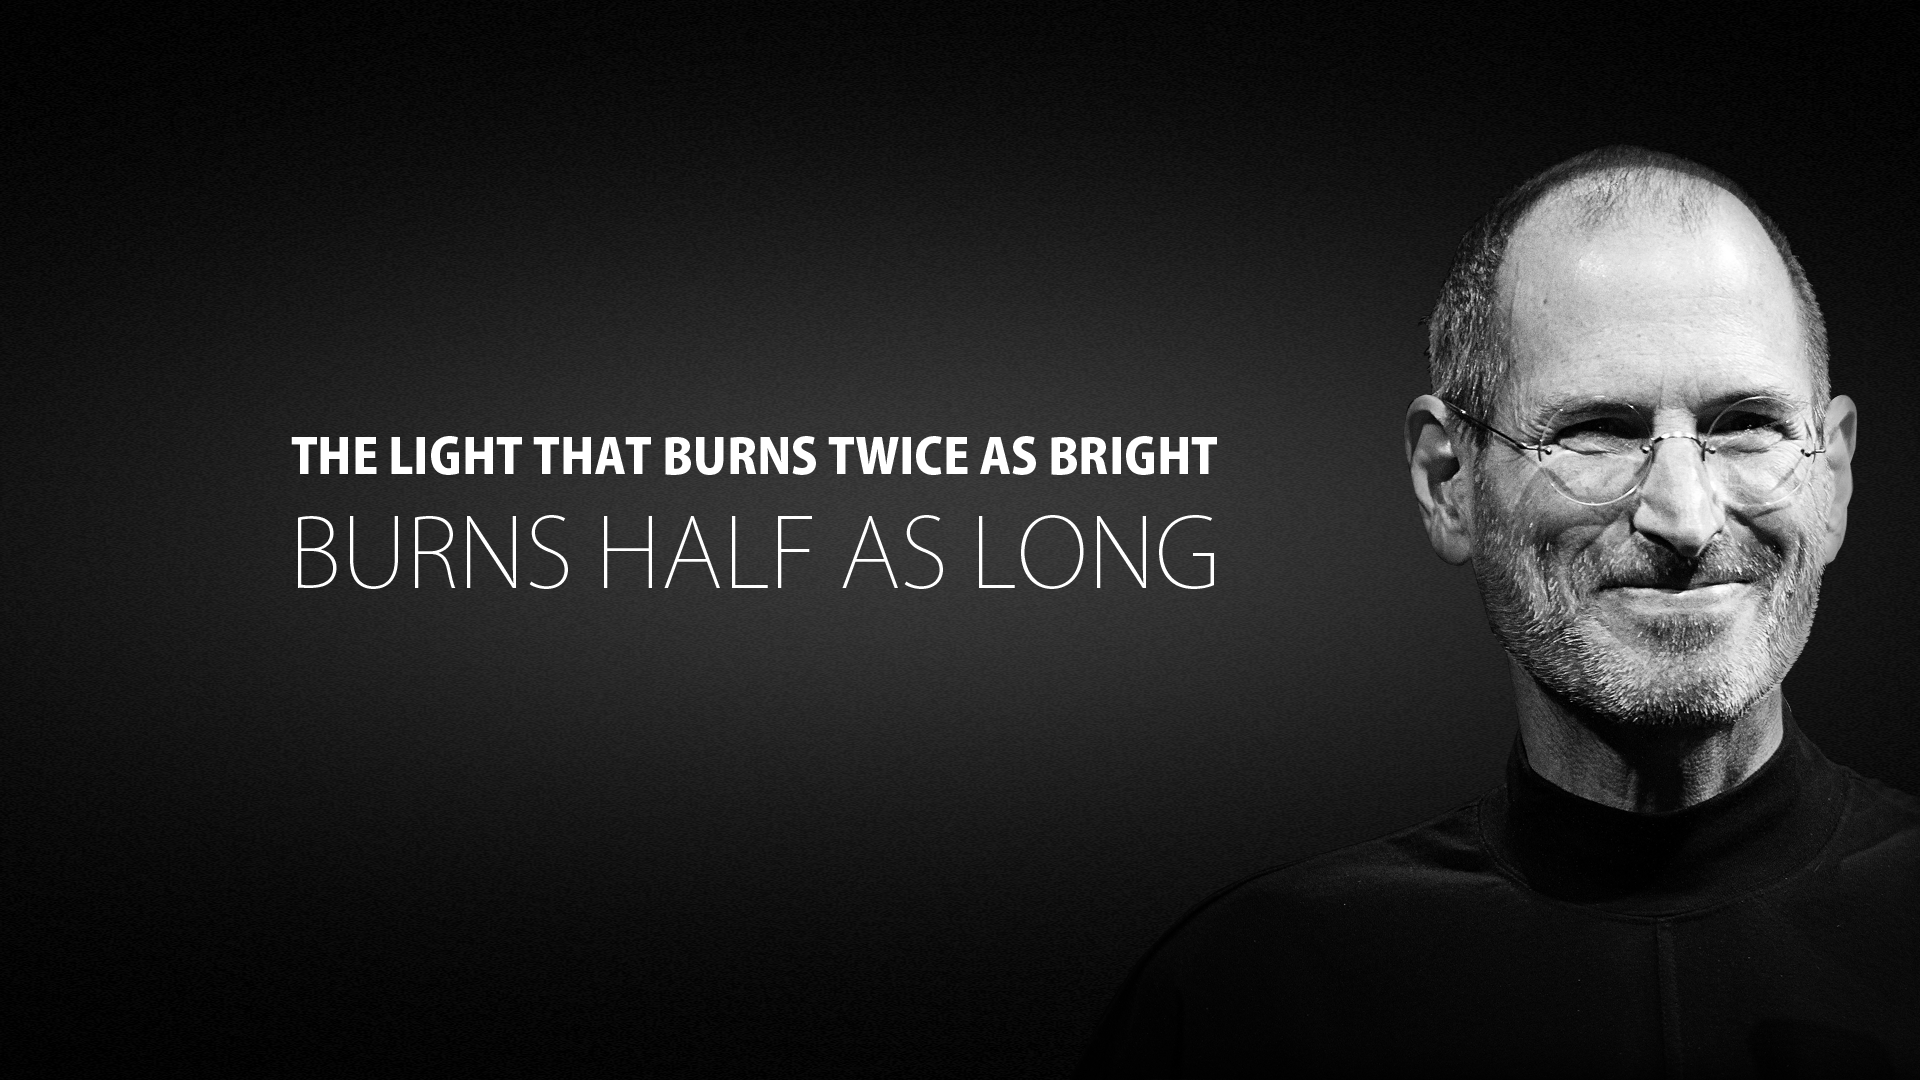 Download steve jobs quotes hd wallpapers gallery - Steve jobs wallpaper download ...